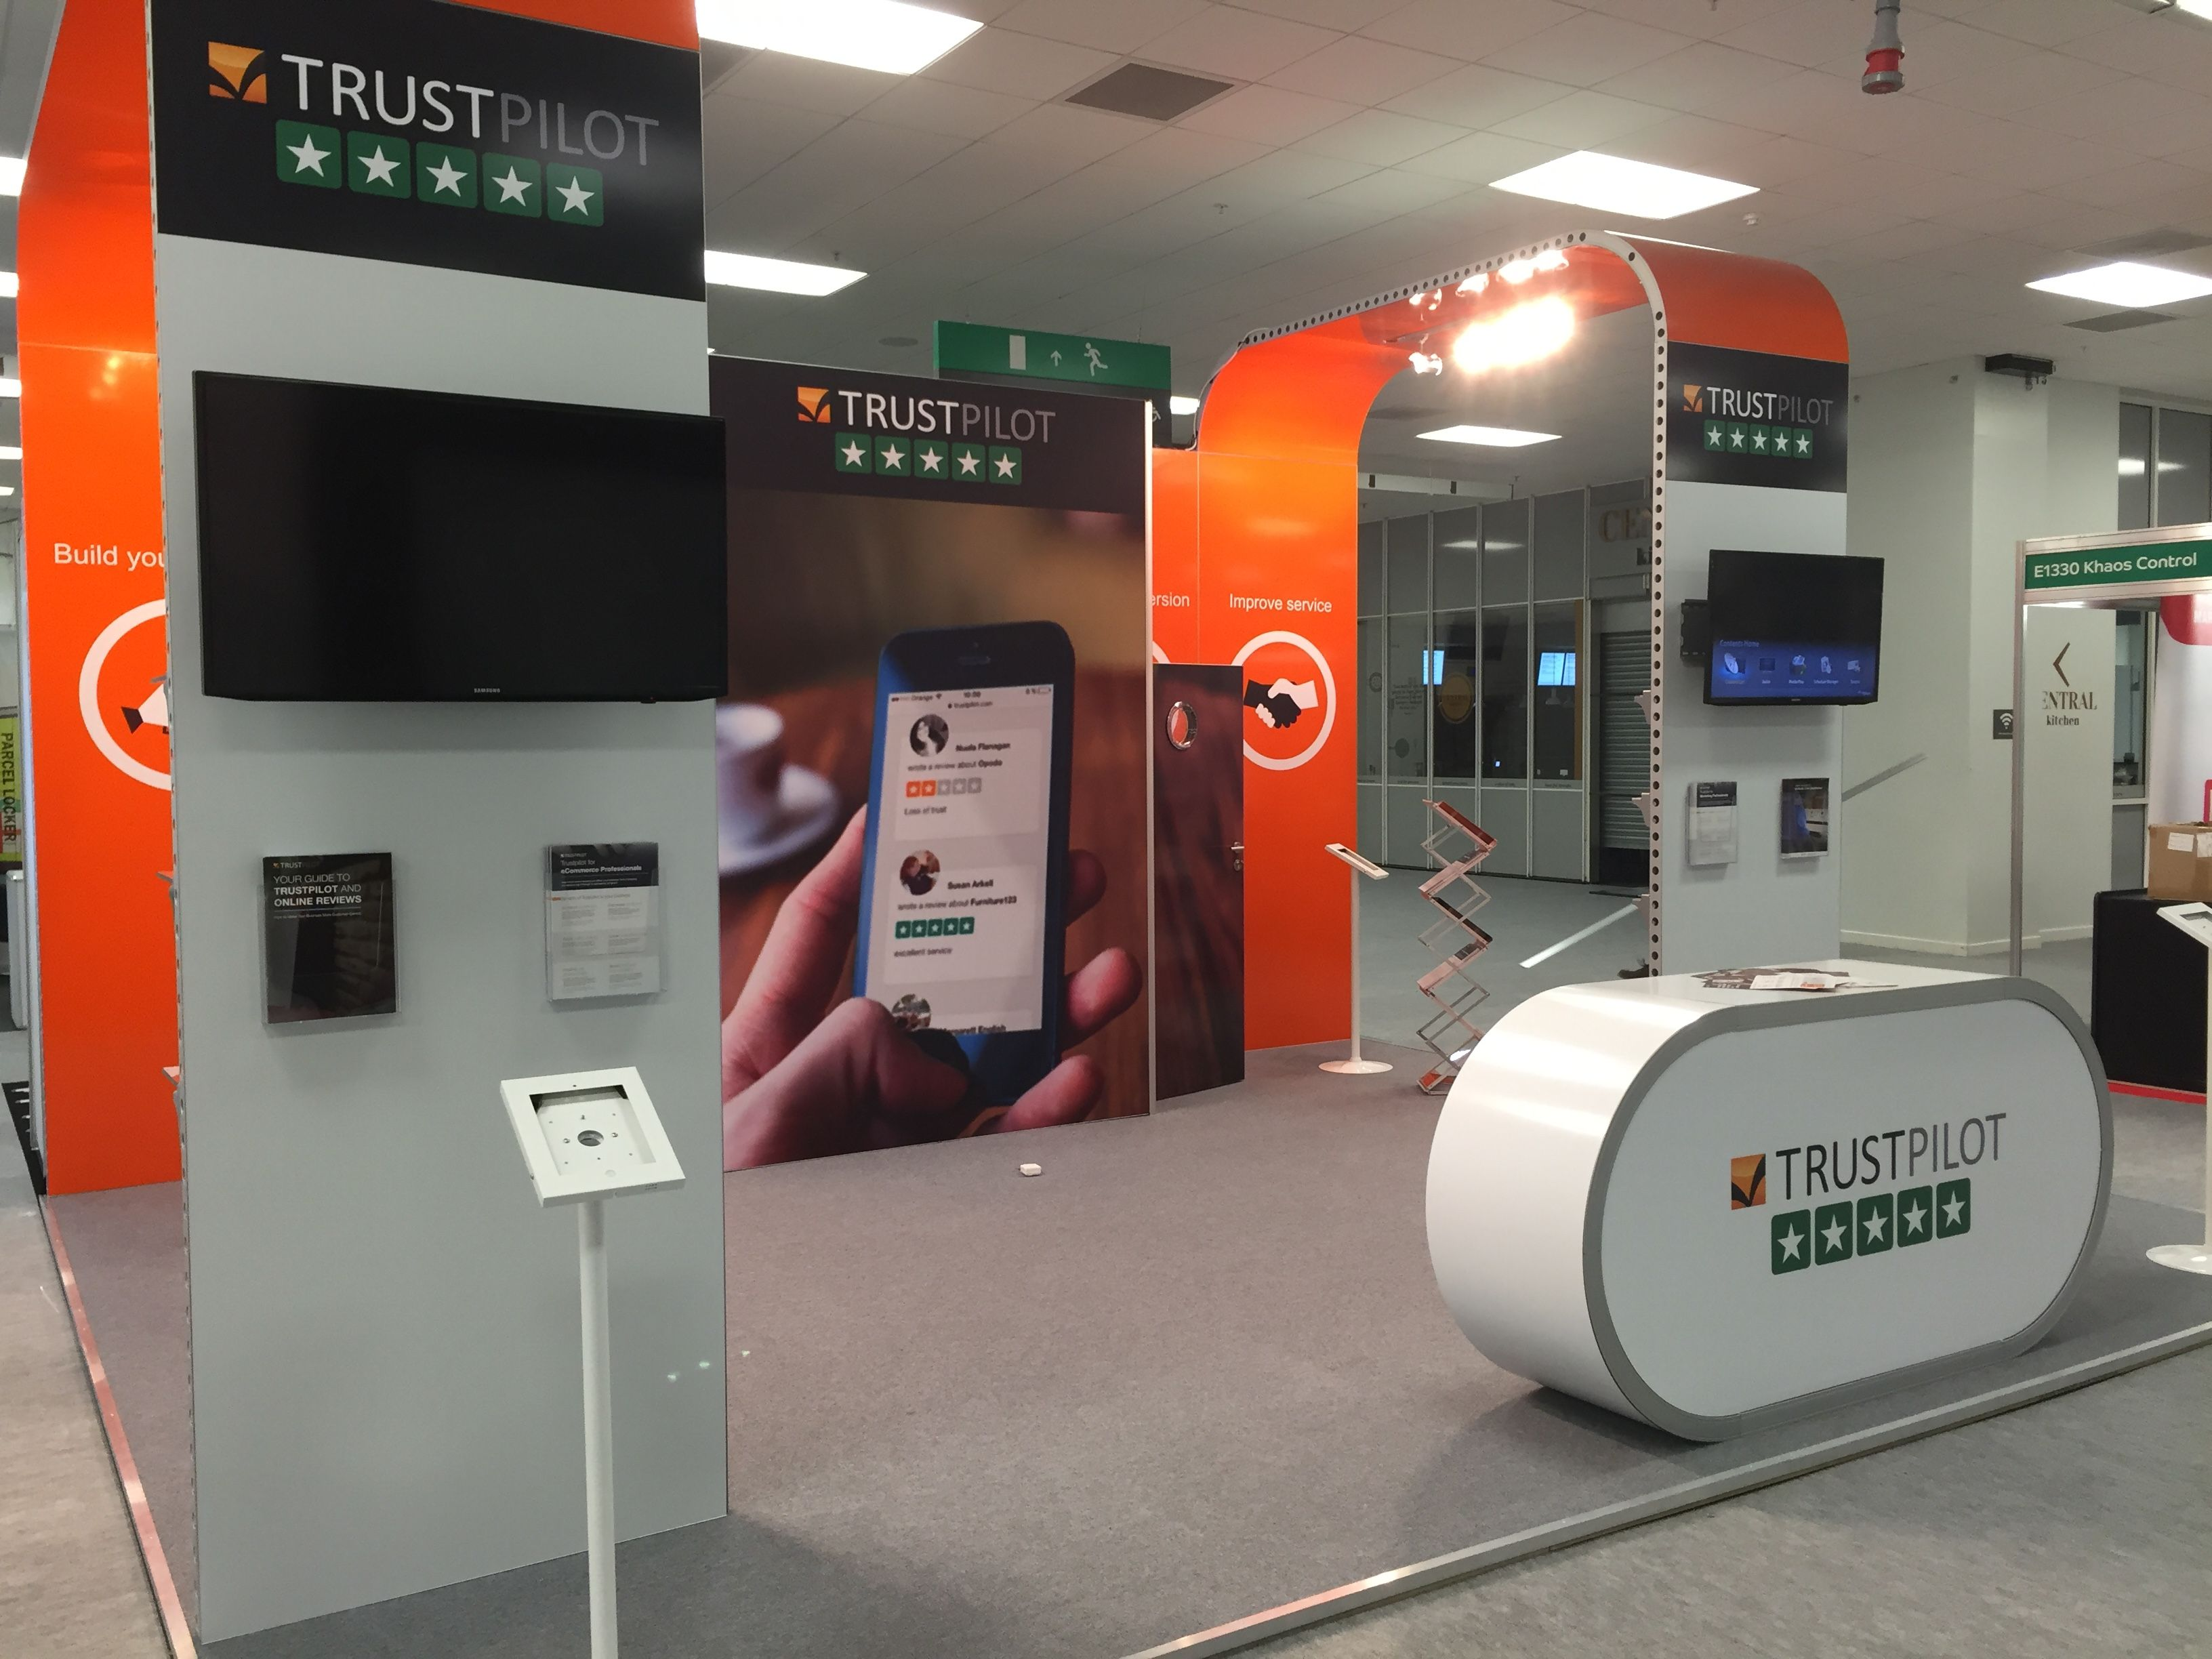 Exhibition Stand Quotation : Vision exhibition stand we designed for trustpilot